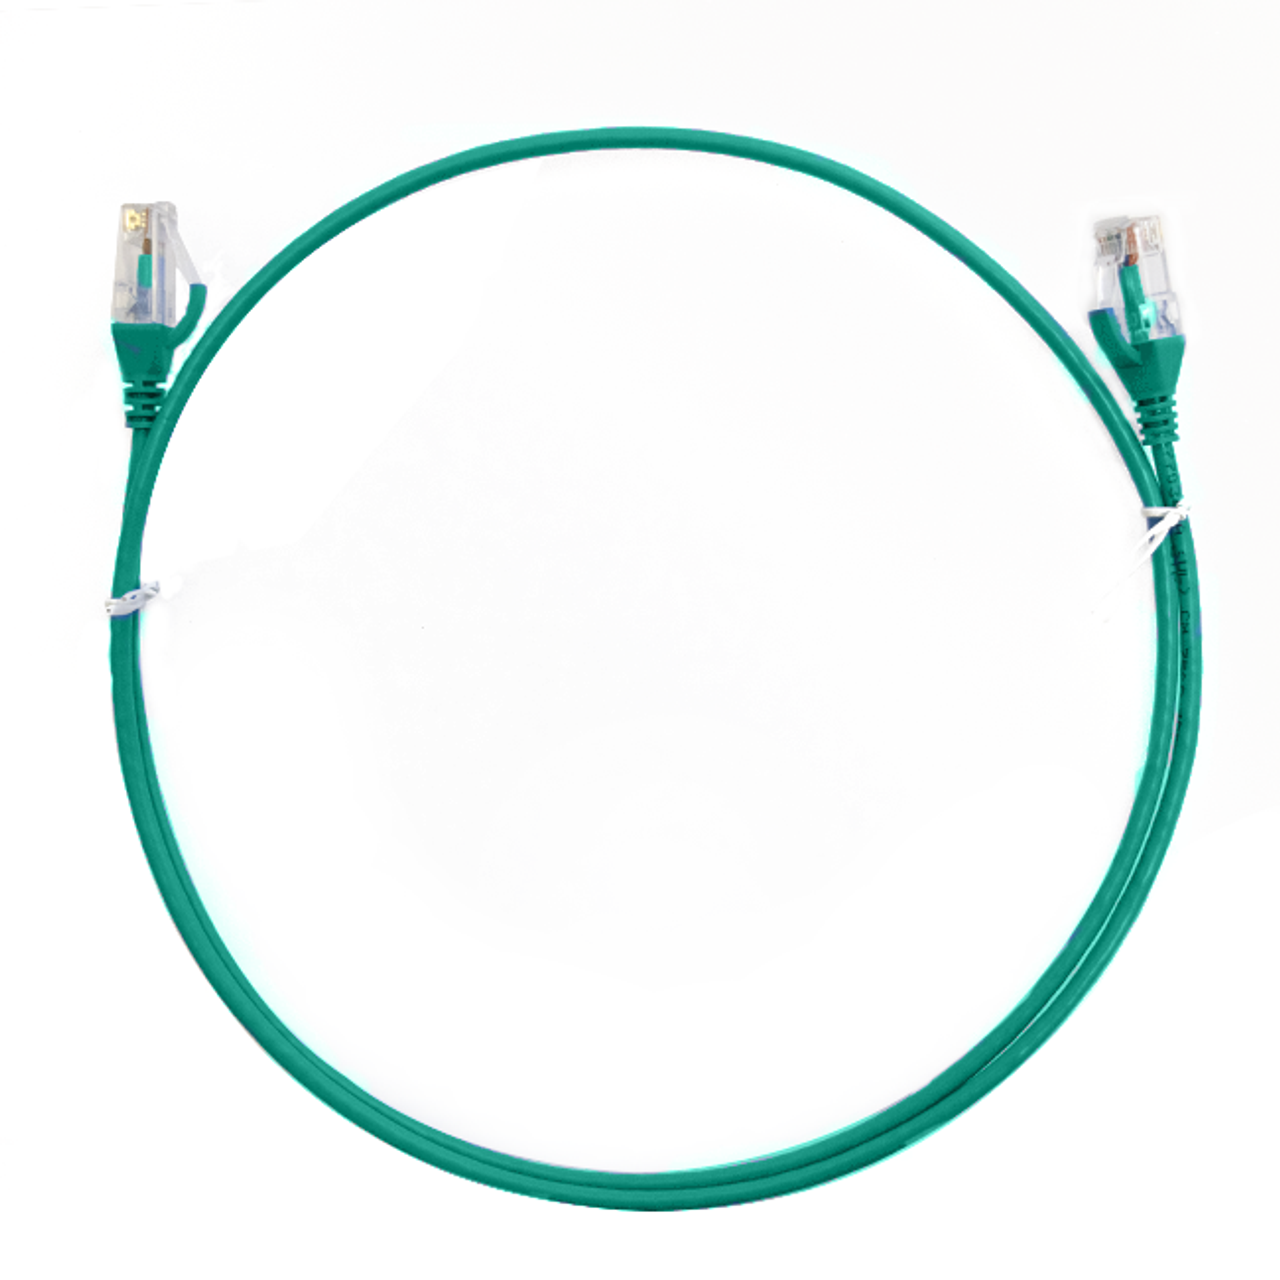 Image for 0.5m Cat 6 Ultra Thin LSZH Ethernet Network Cables: Green CX Computer Superstore